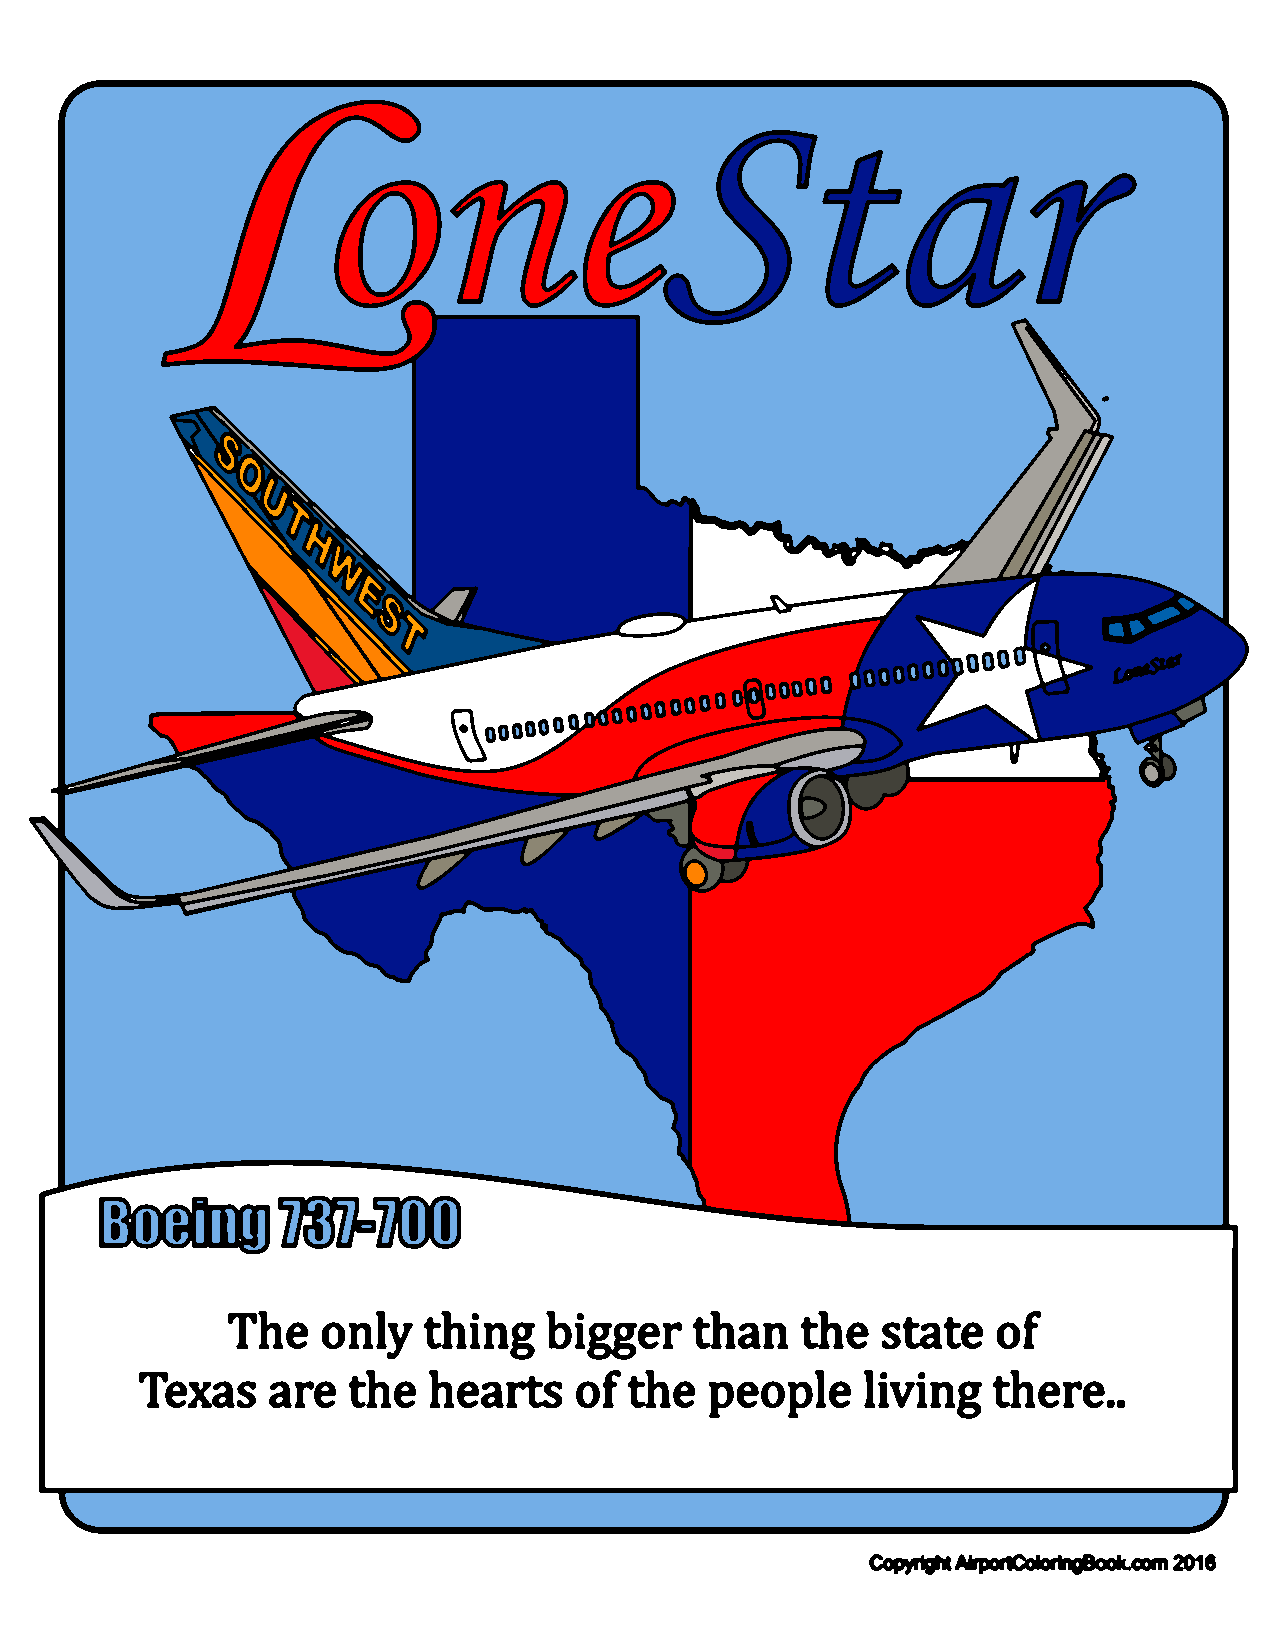 Airport Coloring Book Southwest Airlines Lone Star 737 ...